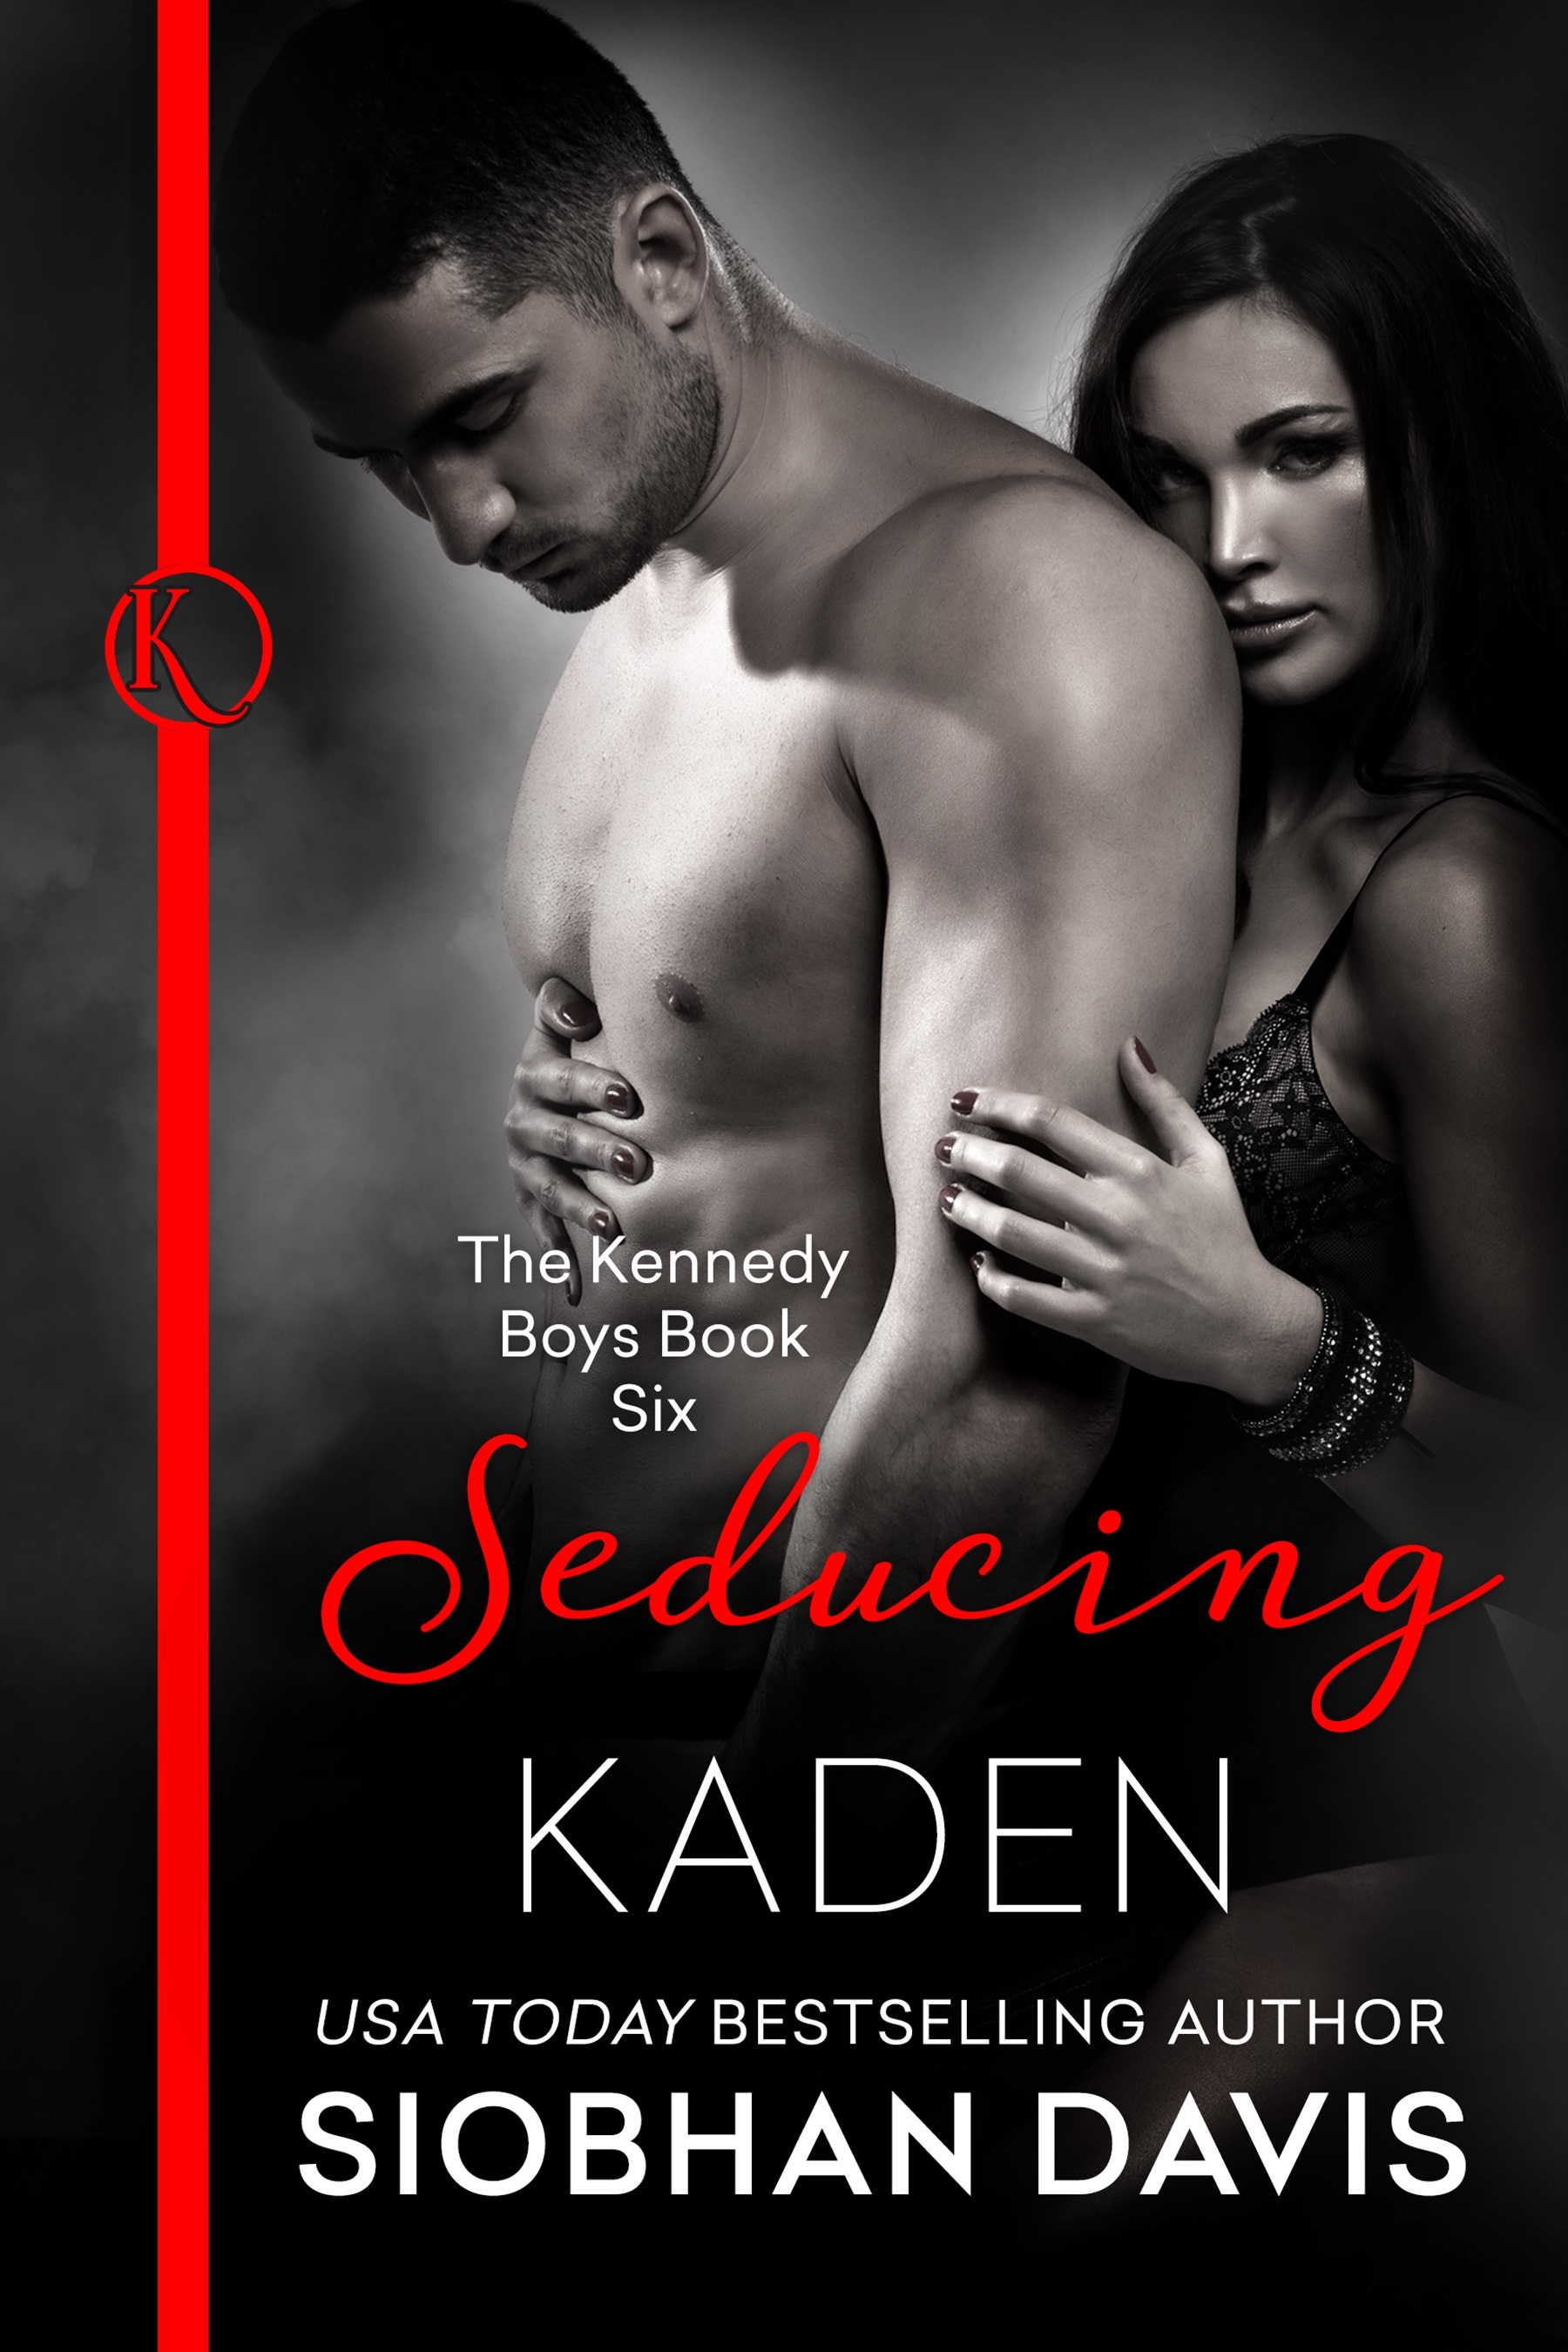 Seducing Kaden by Siobhan Davis